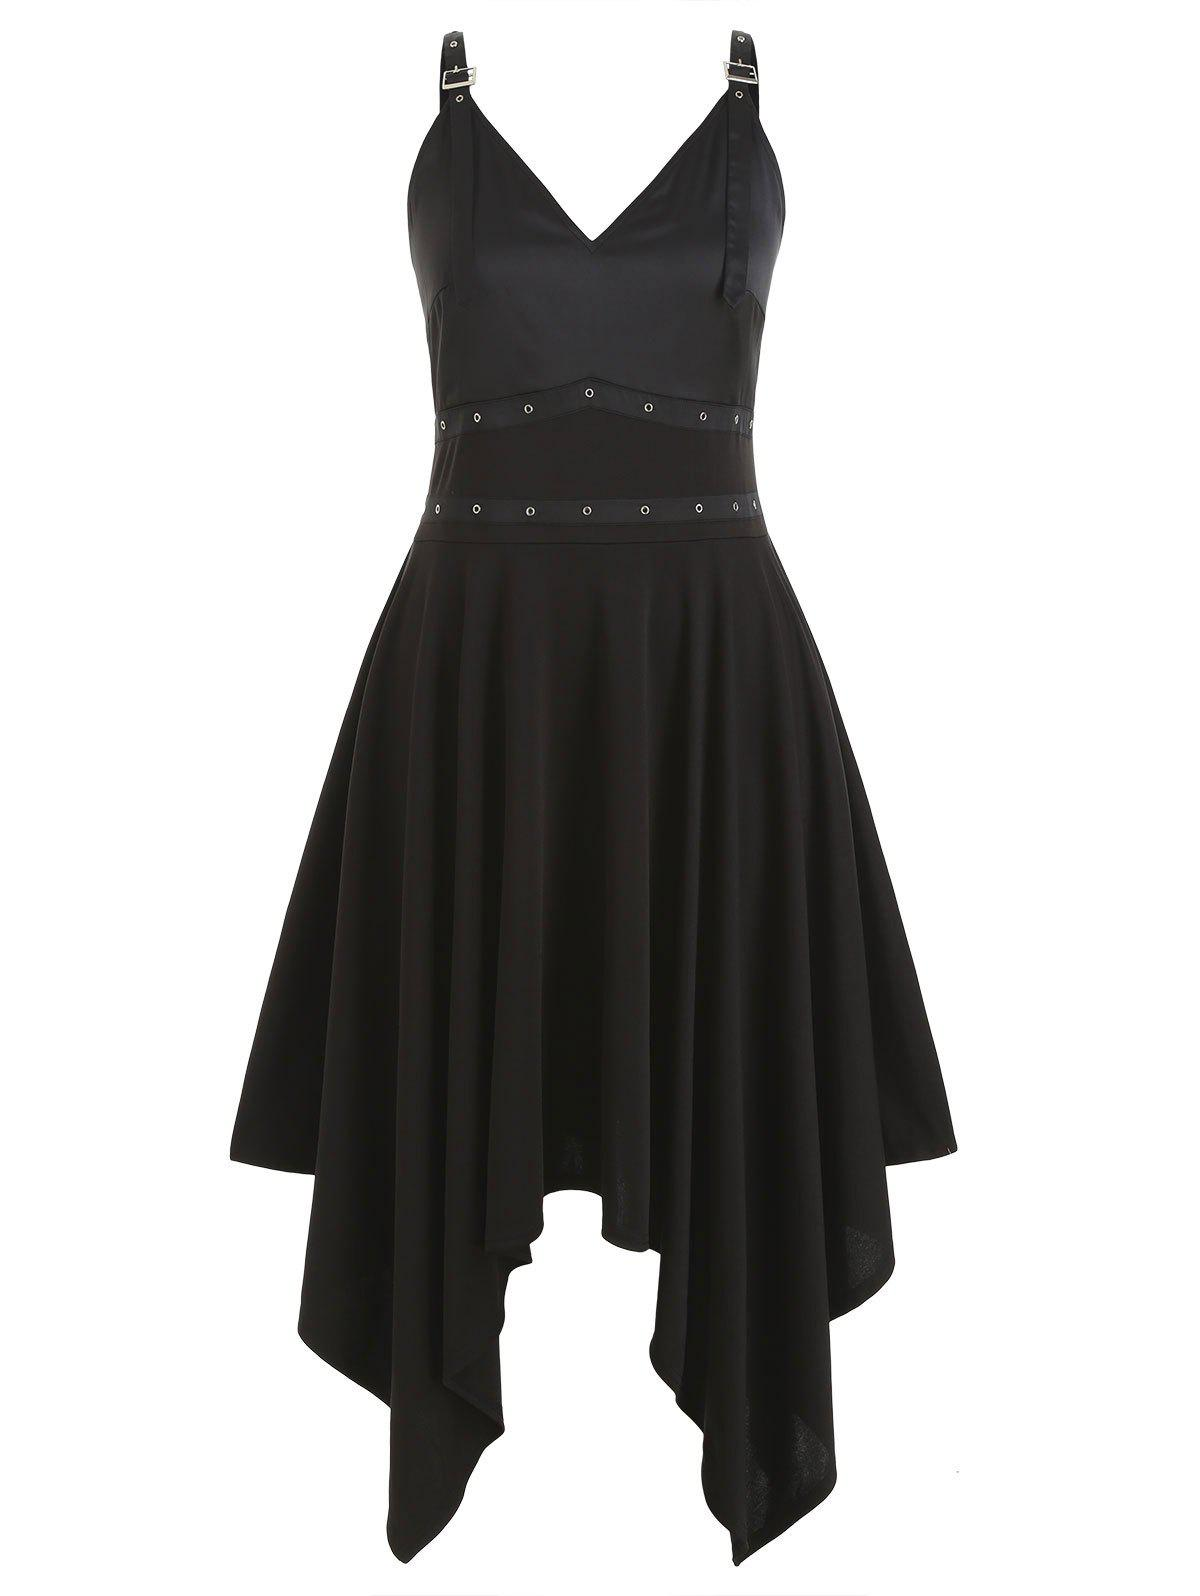 Plus Size Grommets Buckle Straps Hanky Gothic Dress - BLACK 1X